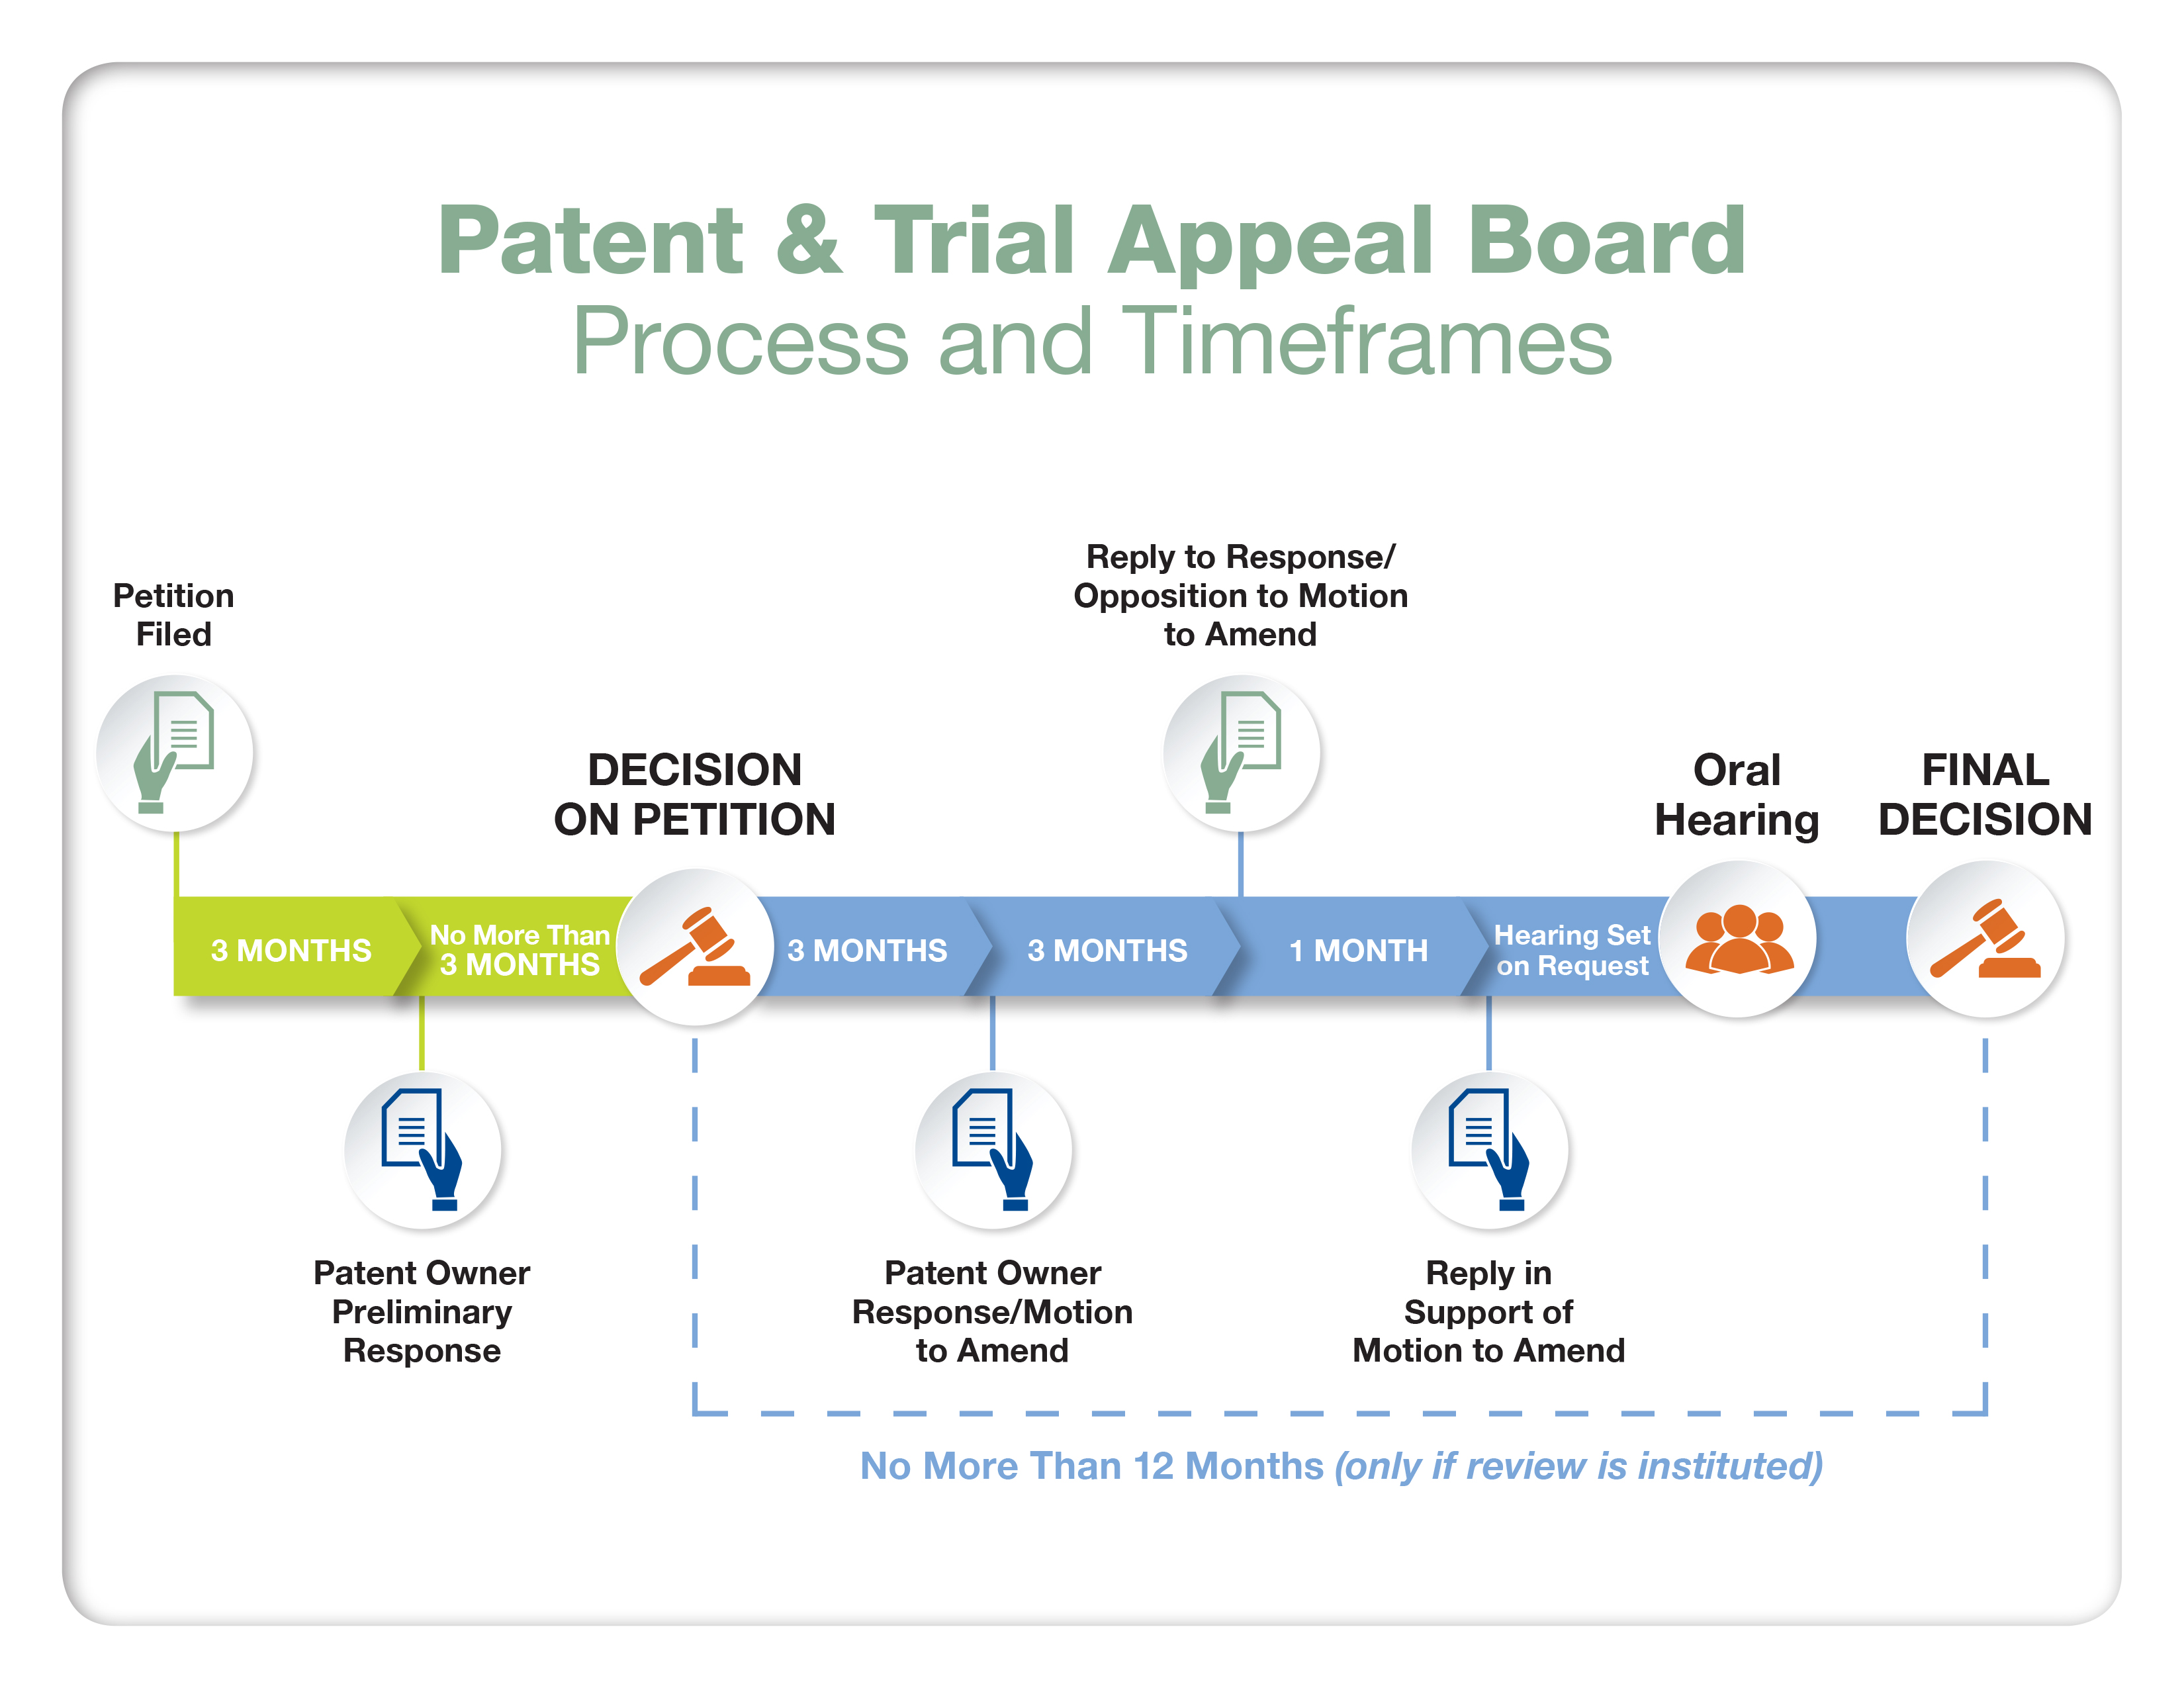 Patent & Trial Appeal Board Process and Timeframes